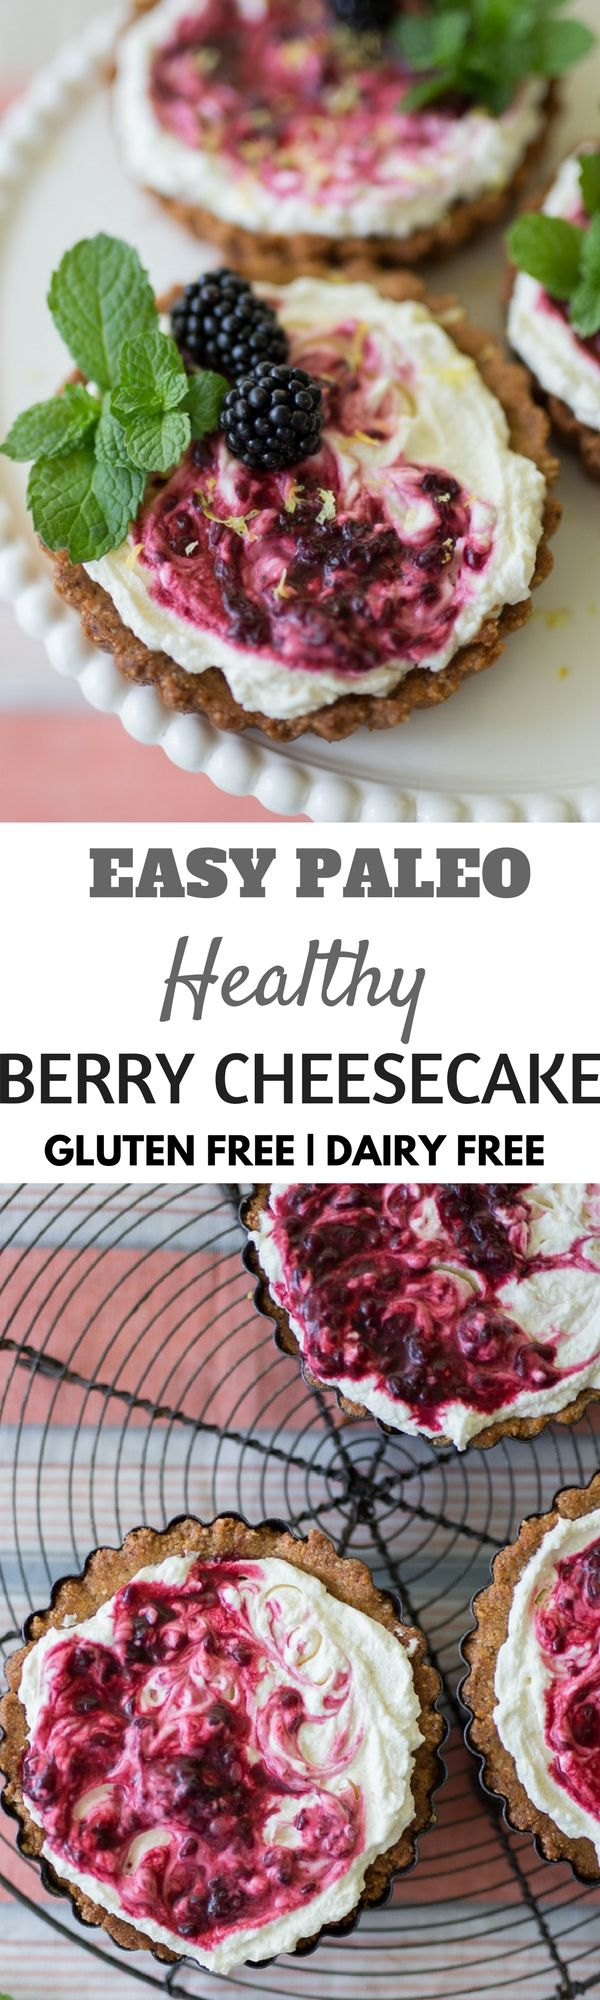 Dairy free berry cheesecake. Best healthy paleo desserts for summer.